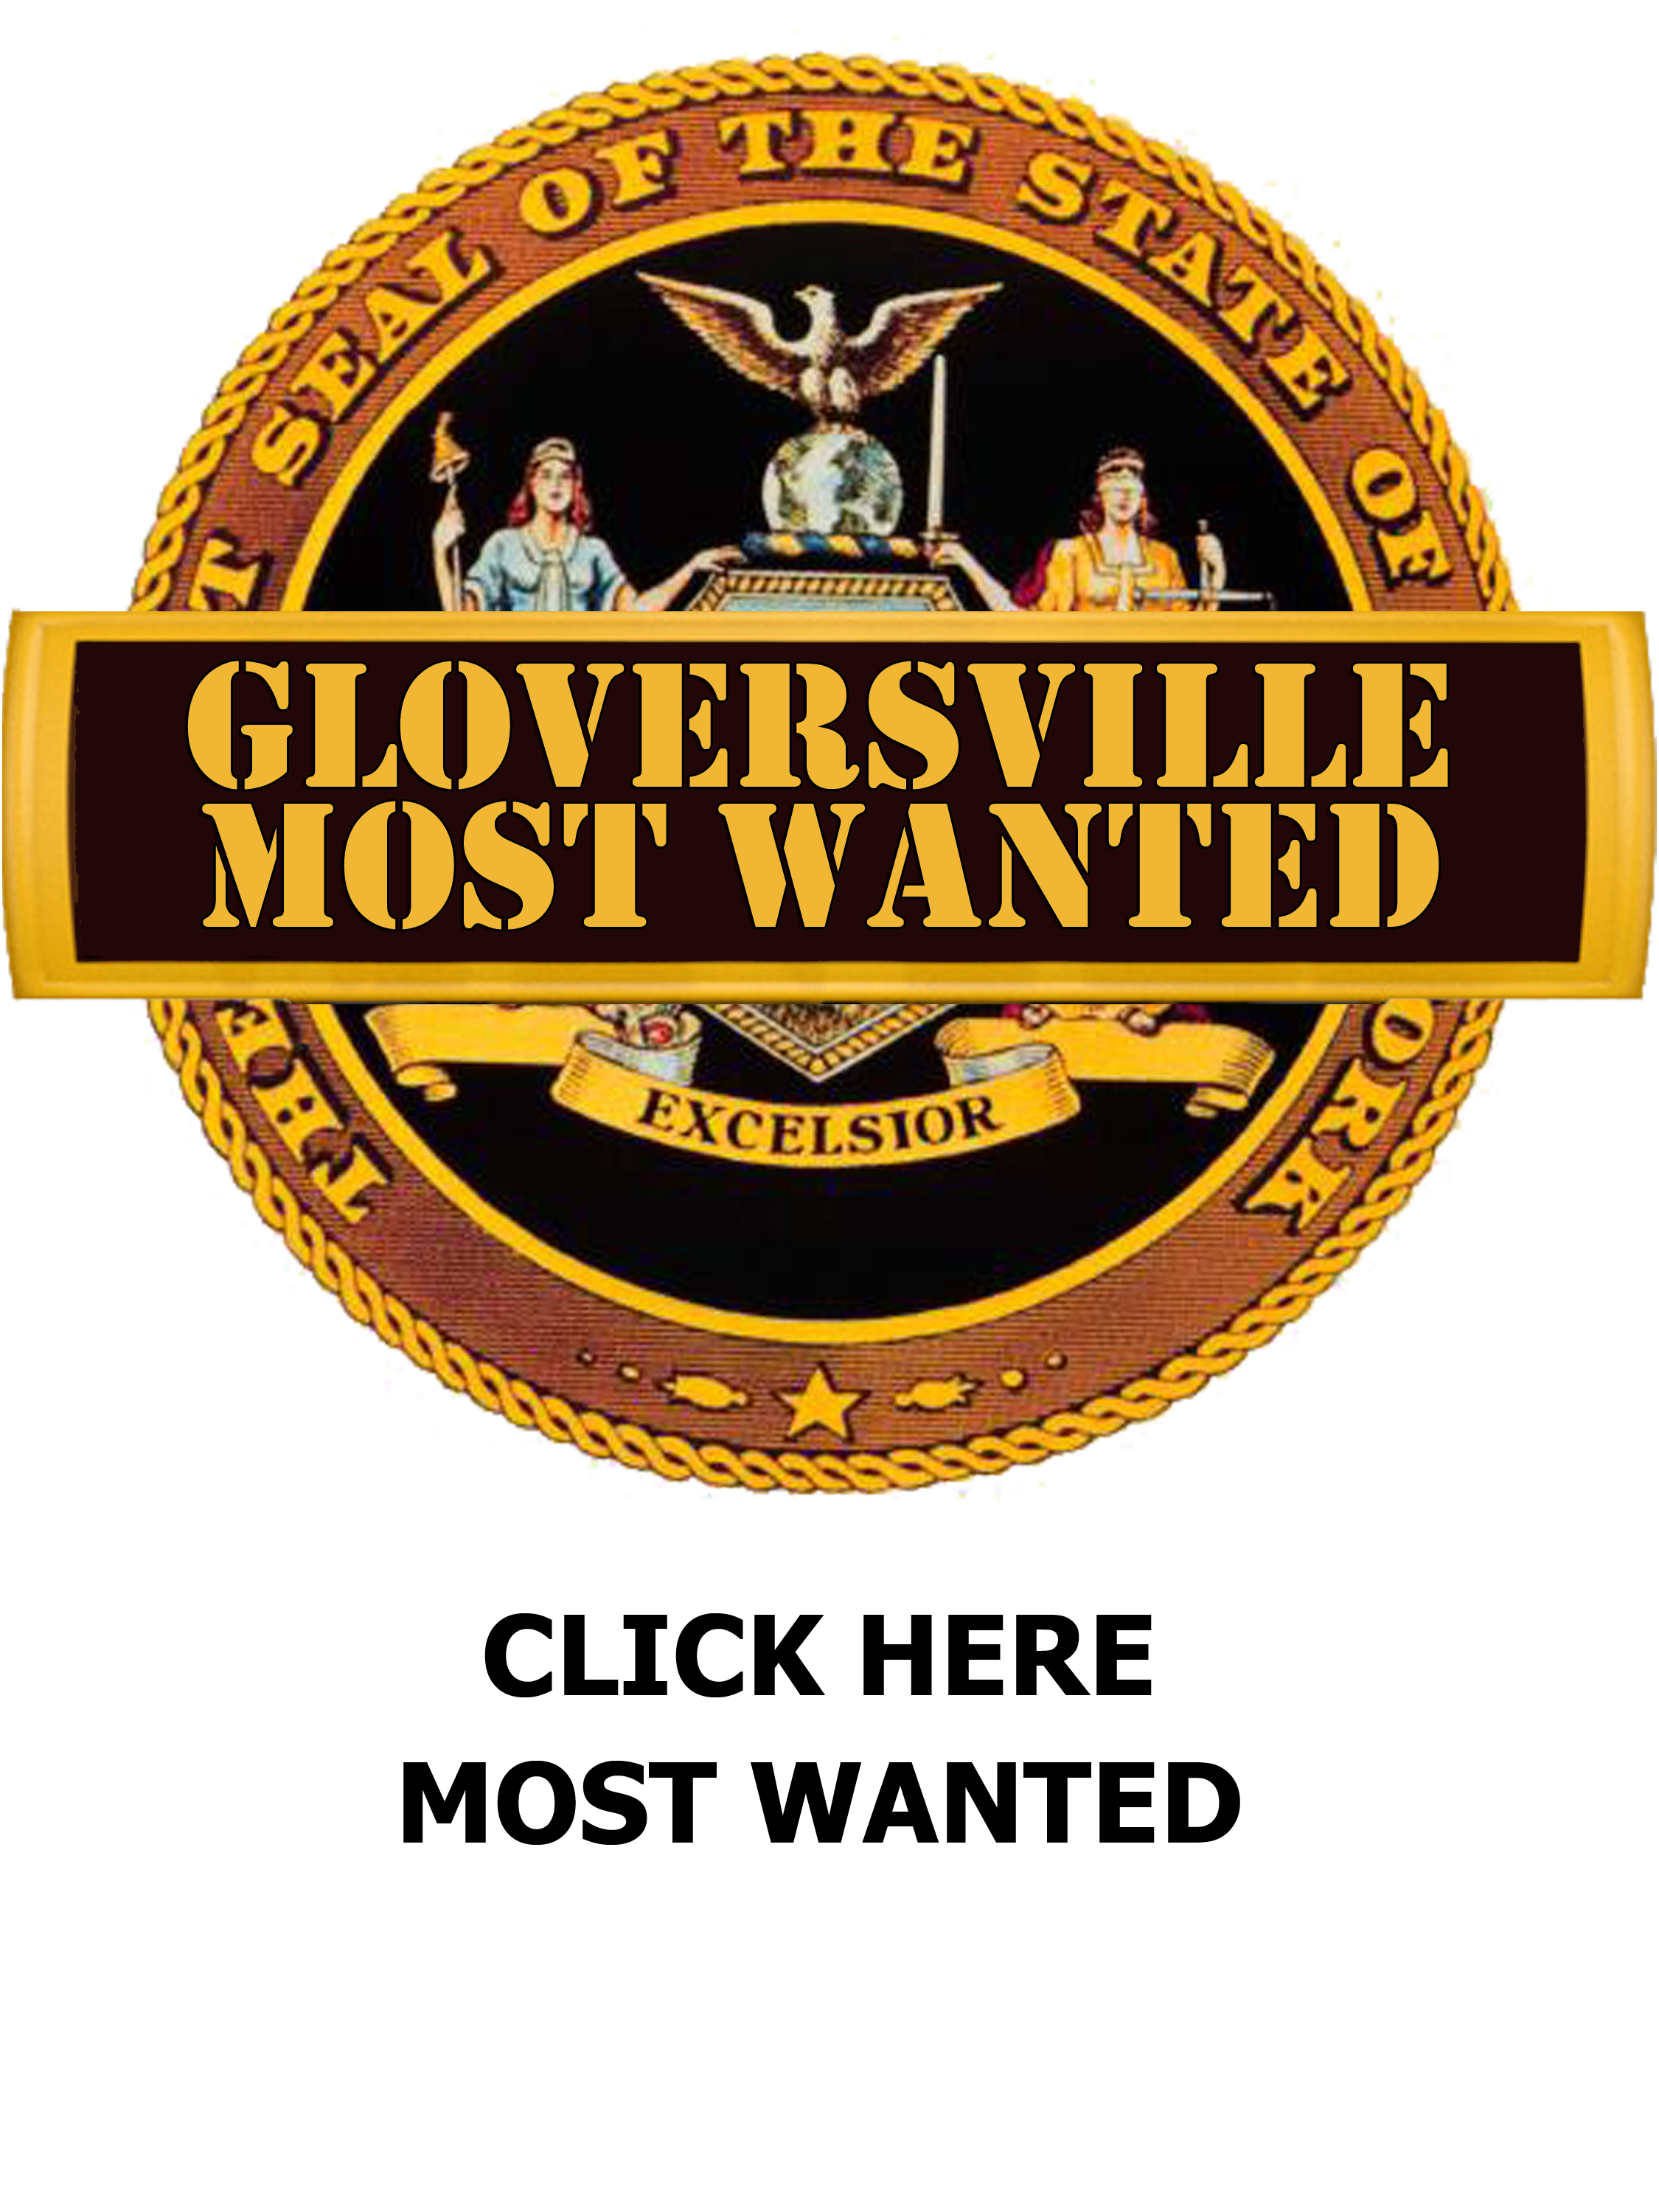 GLoversville's Most Wanted